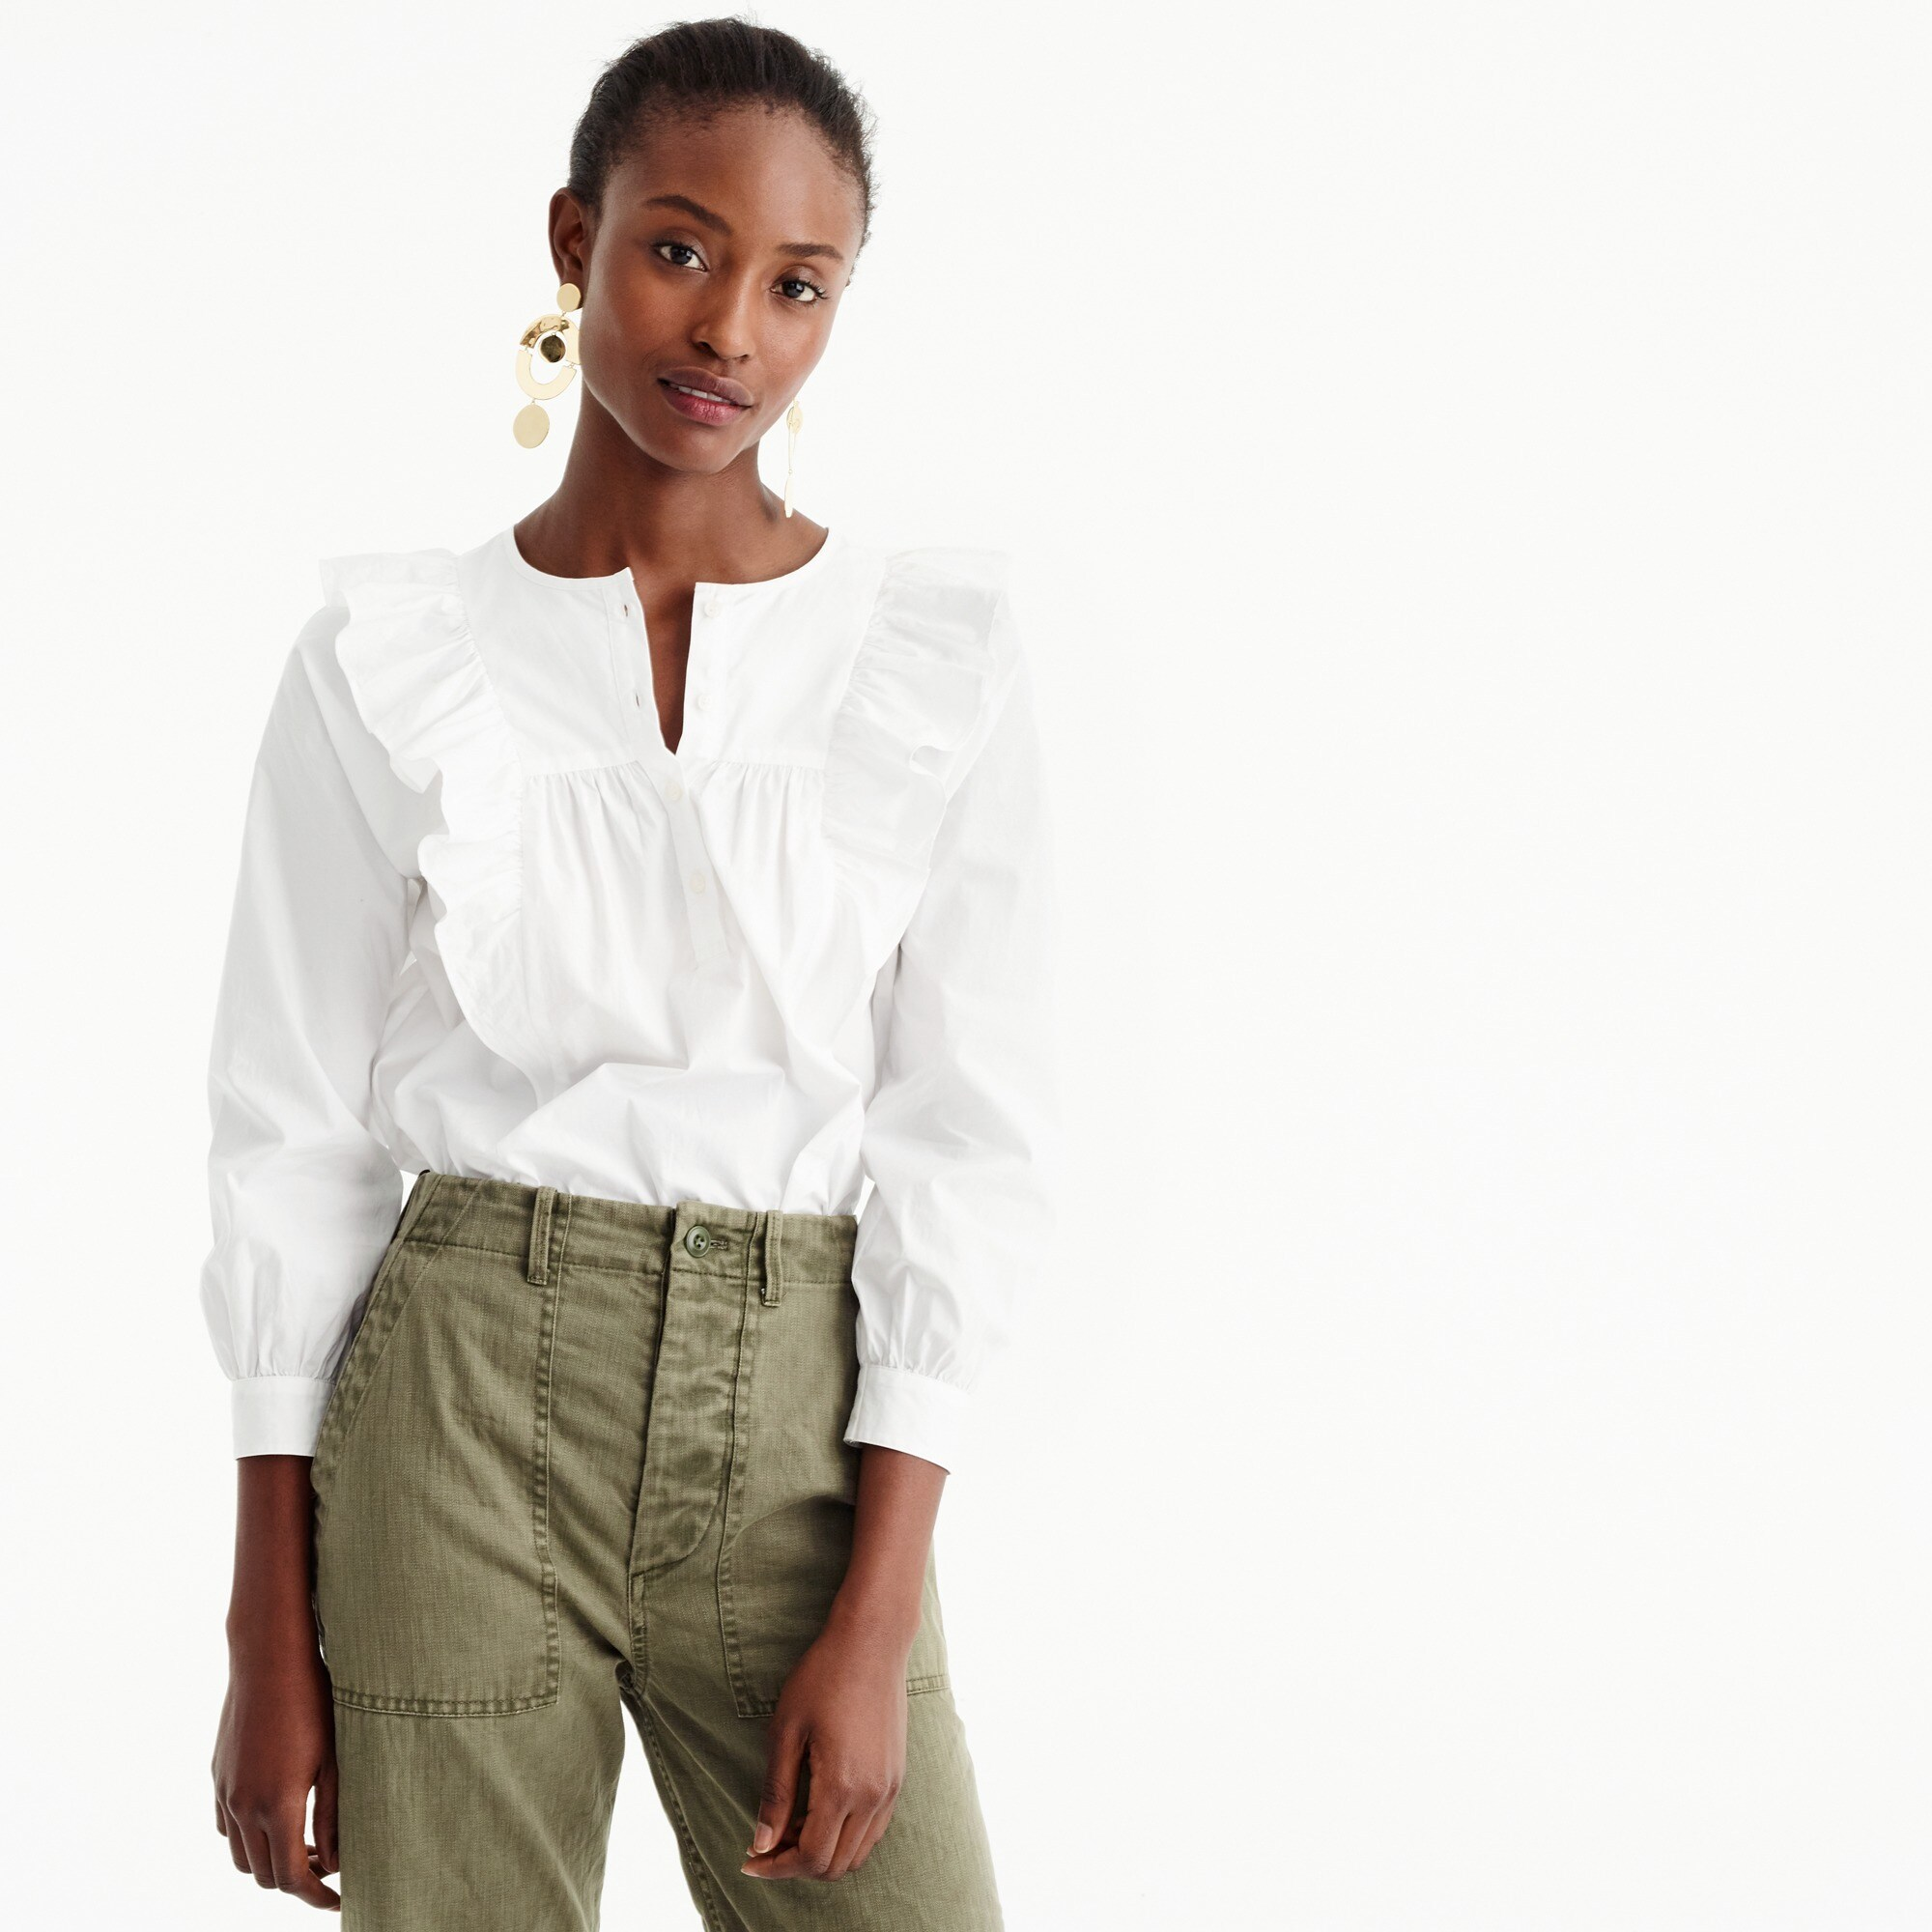 tall ruffle-front white shirt : women sleeved